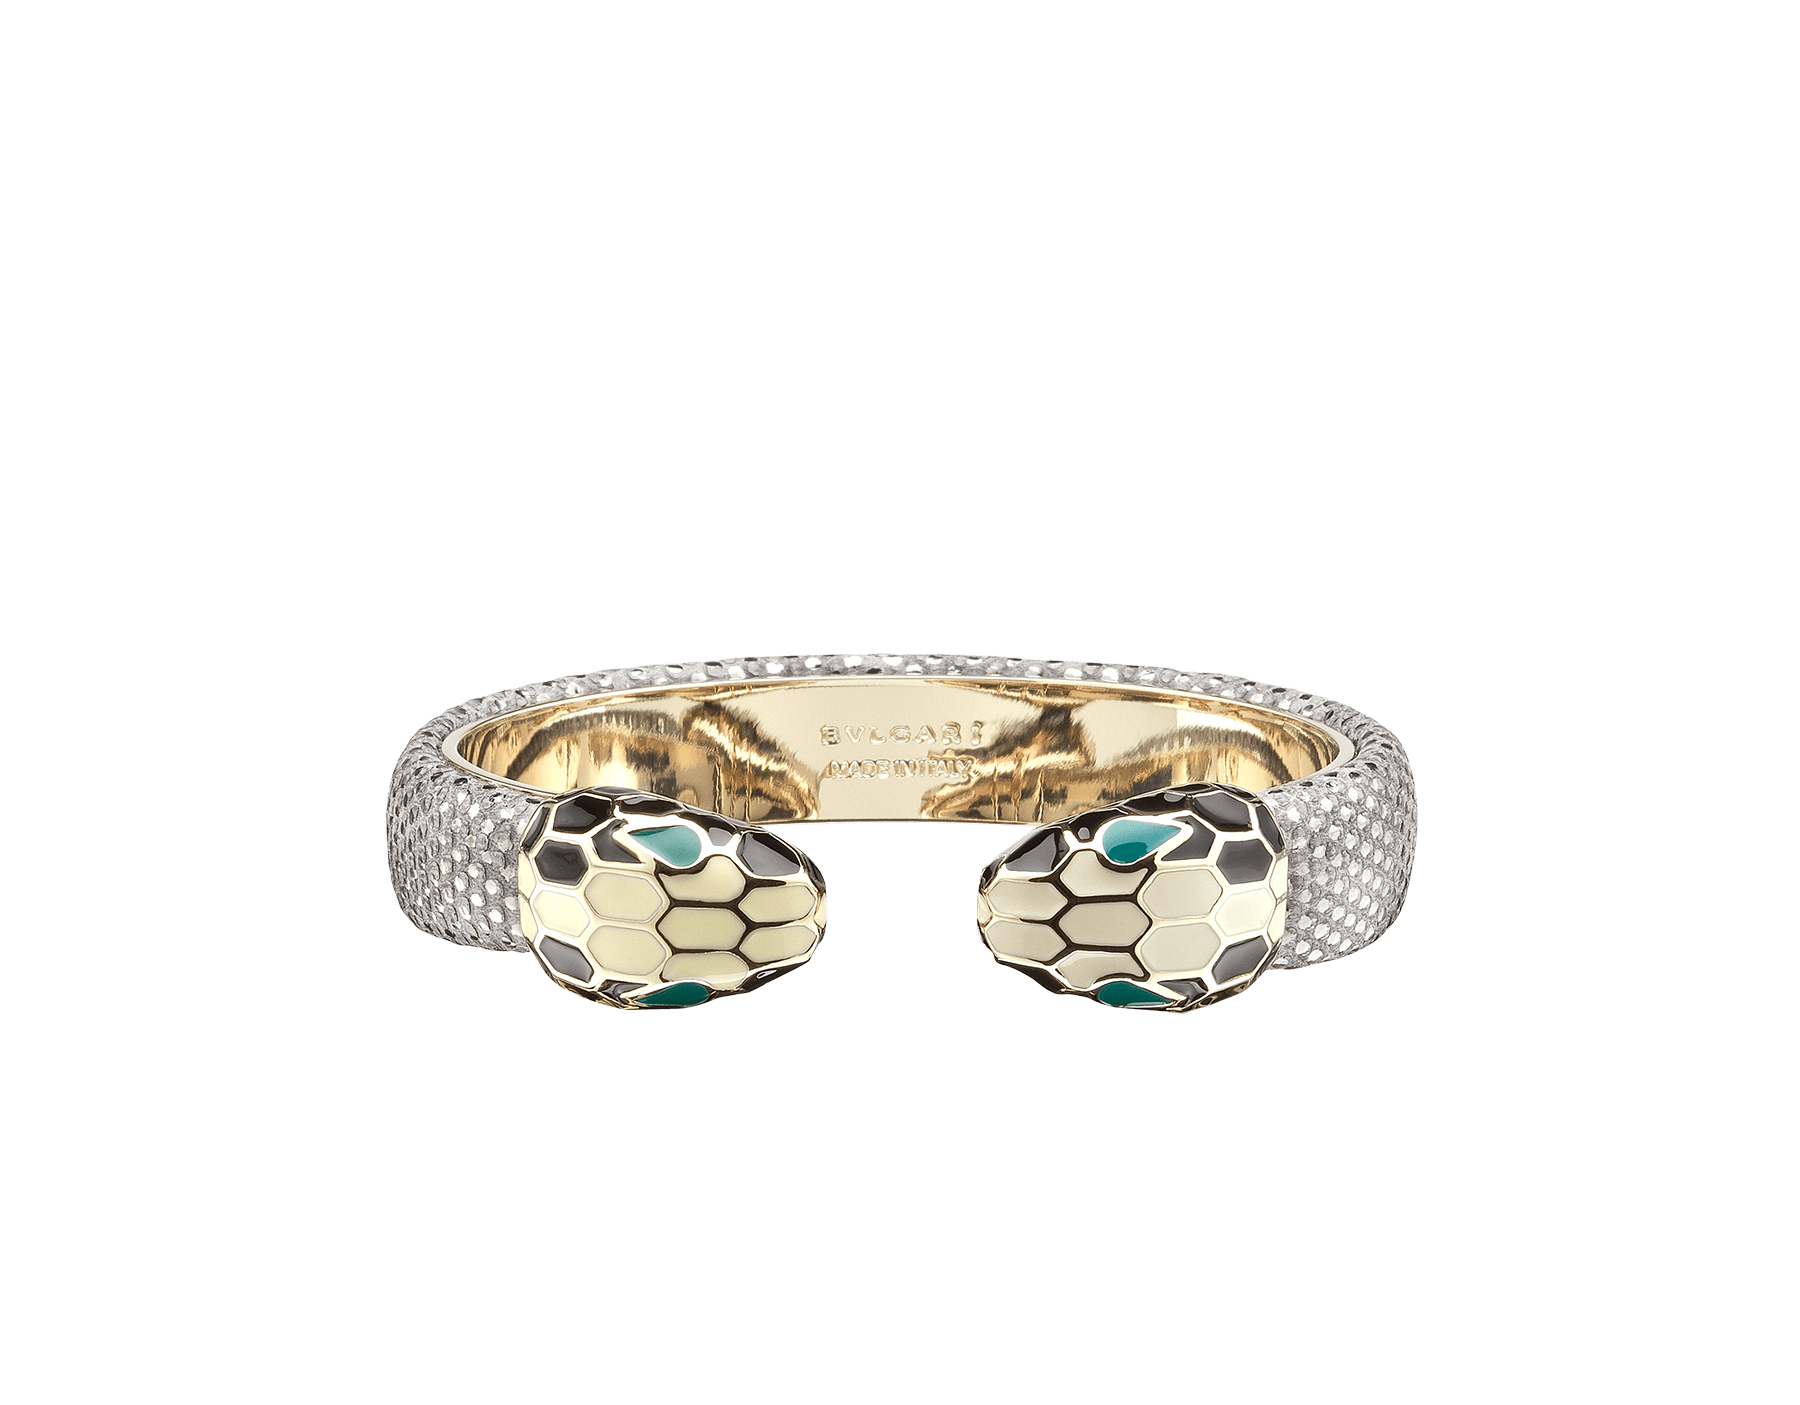 Bracelet in silver metallic karung skin with iconic contraire brass light gold plated Serpenti heads motif in black and white enamel, with green enamel eyes. 285643 image 1